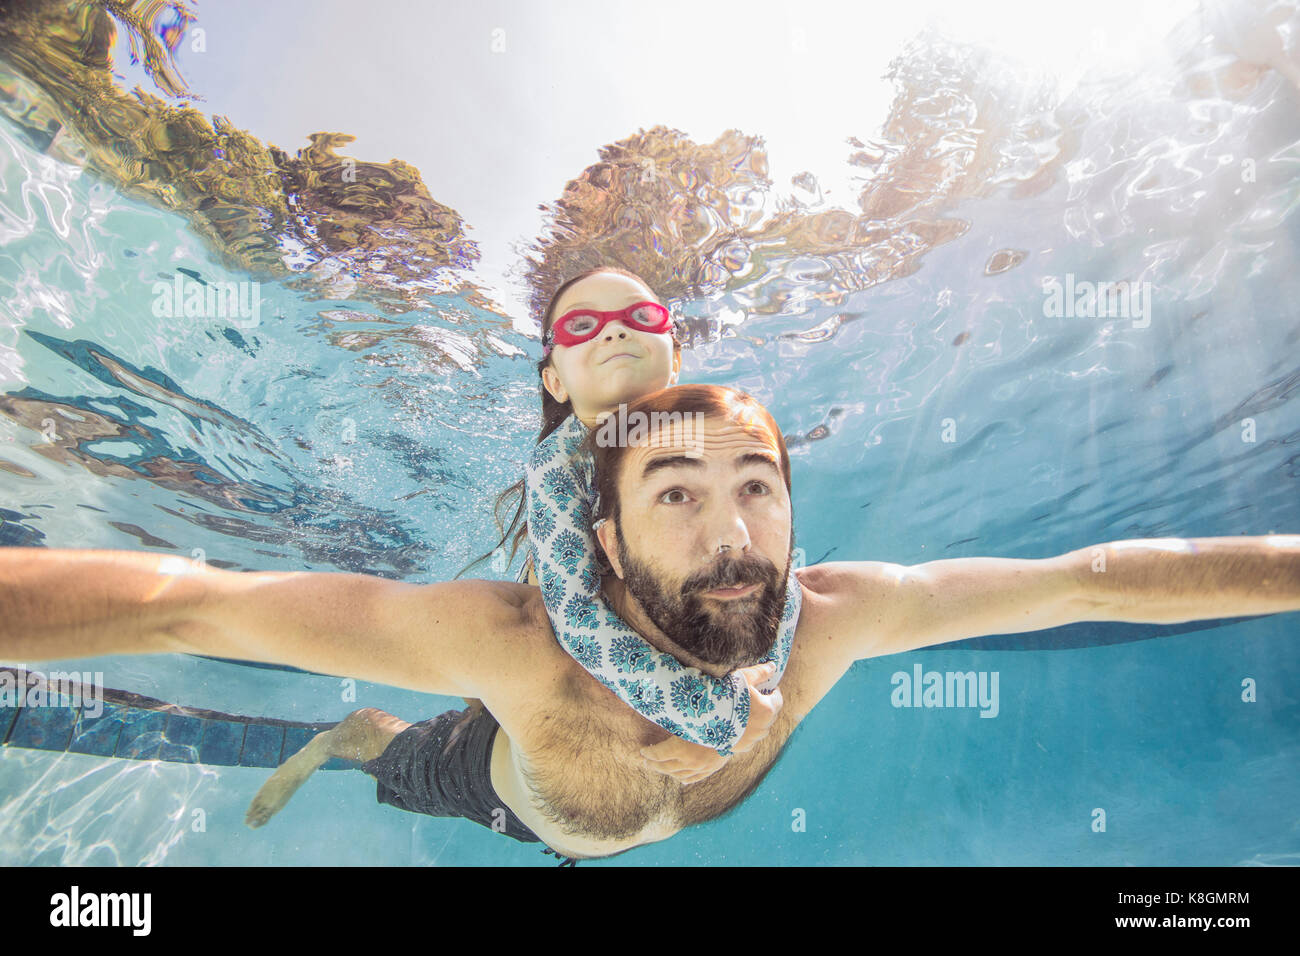 Underwater view of mature man swimming with daughter on piggy back - Stock Image